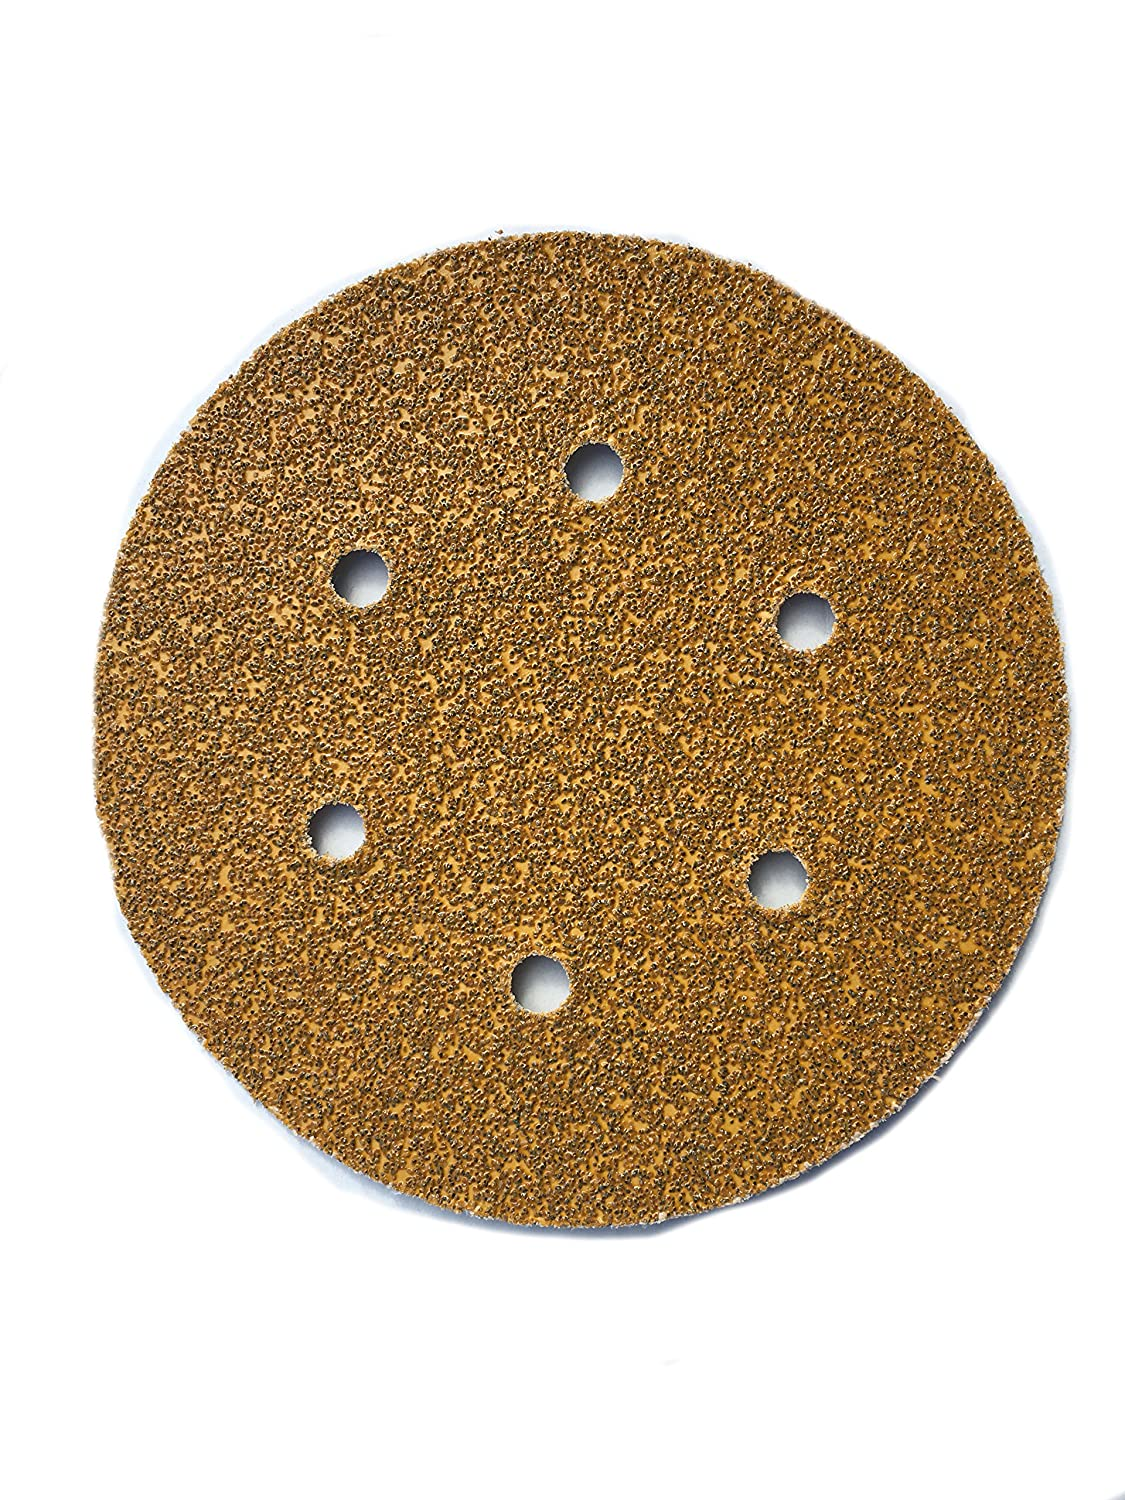 Sungold Abrasives 365060 6 By 6 Hole 80 Grit Heavyweight Paper Premium F-Weight Paper Hook And Loop Sanding Discs 25-Pack